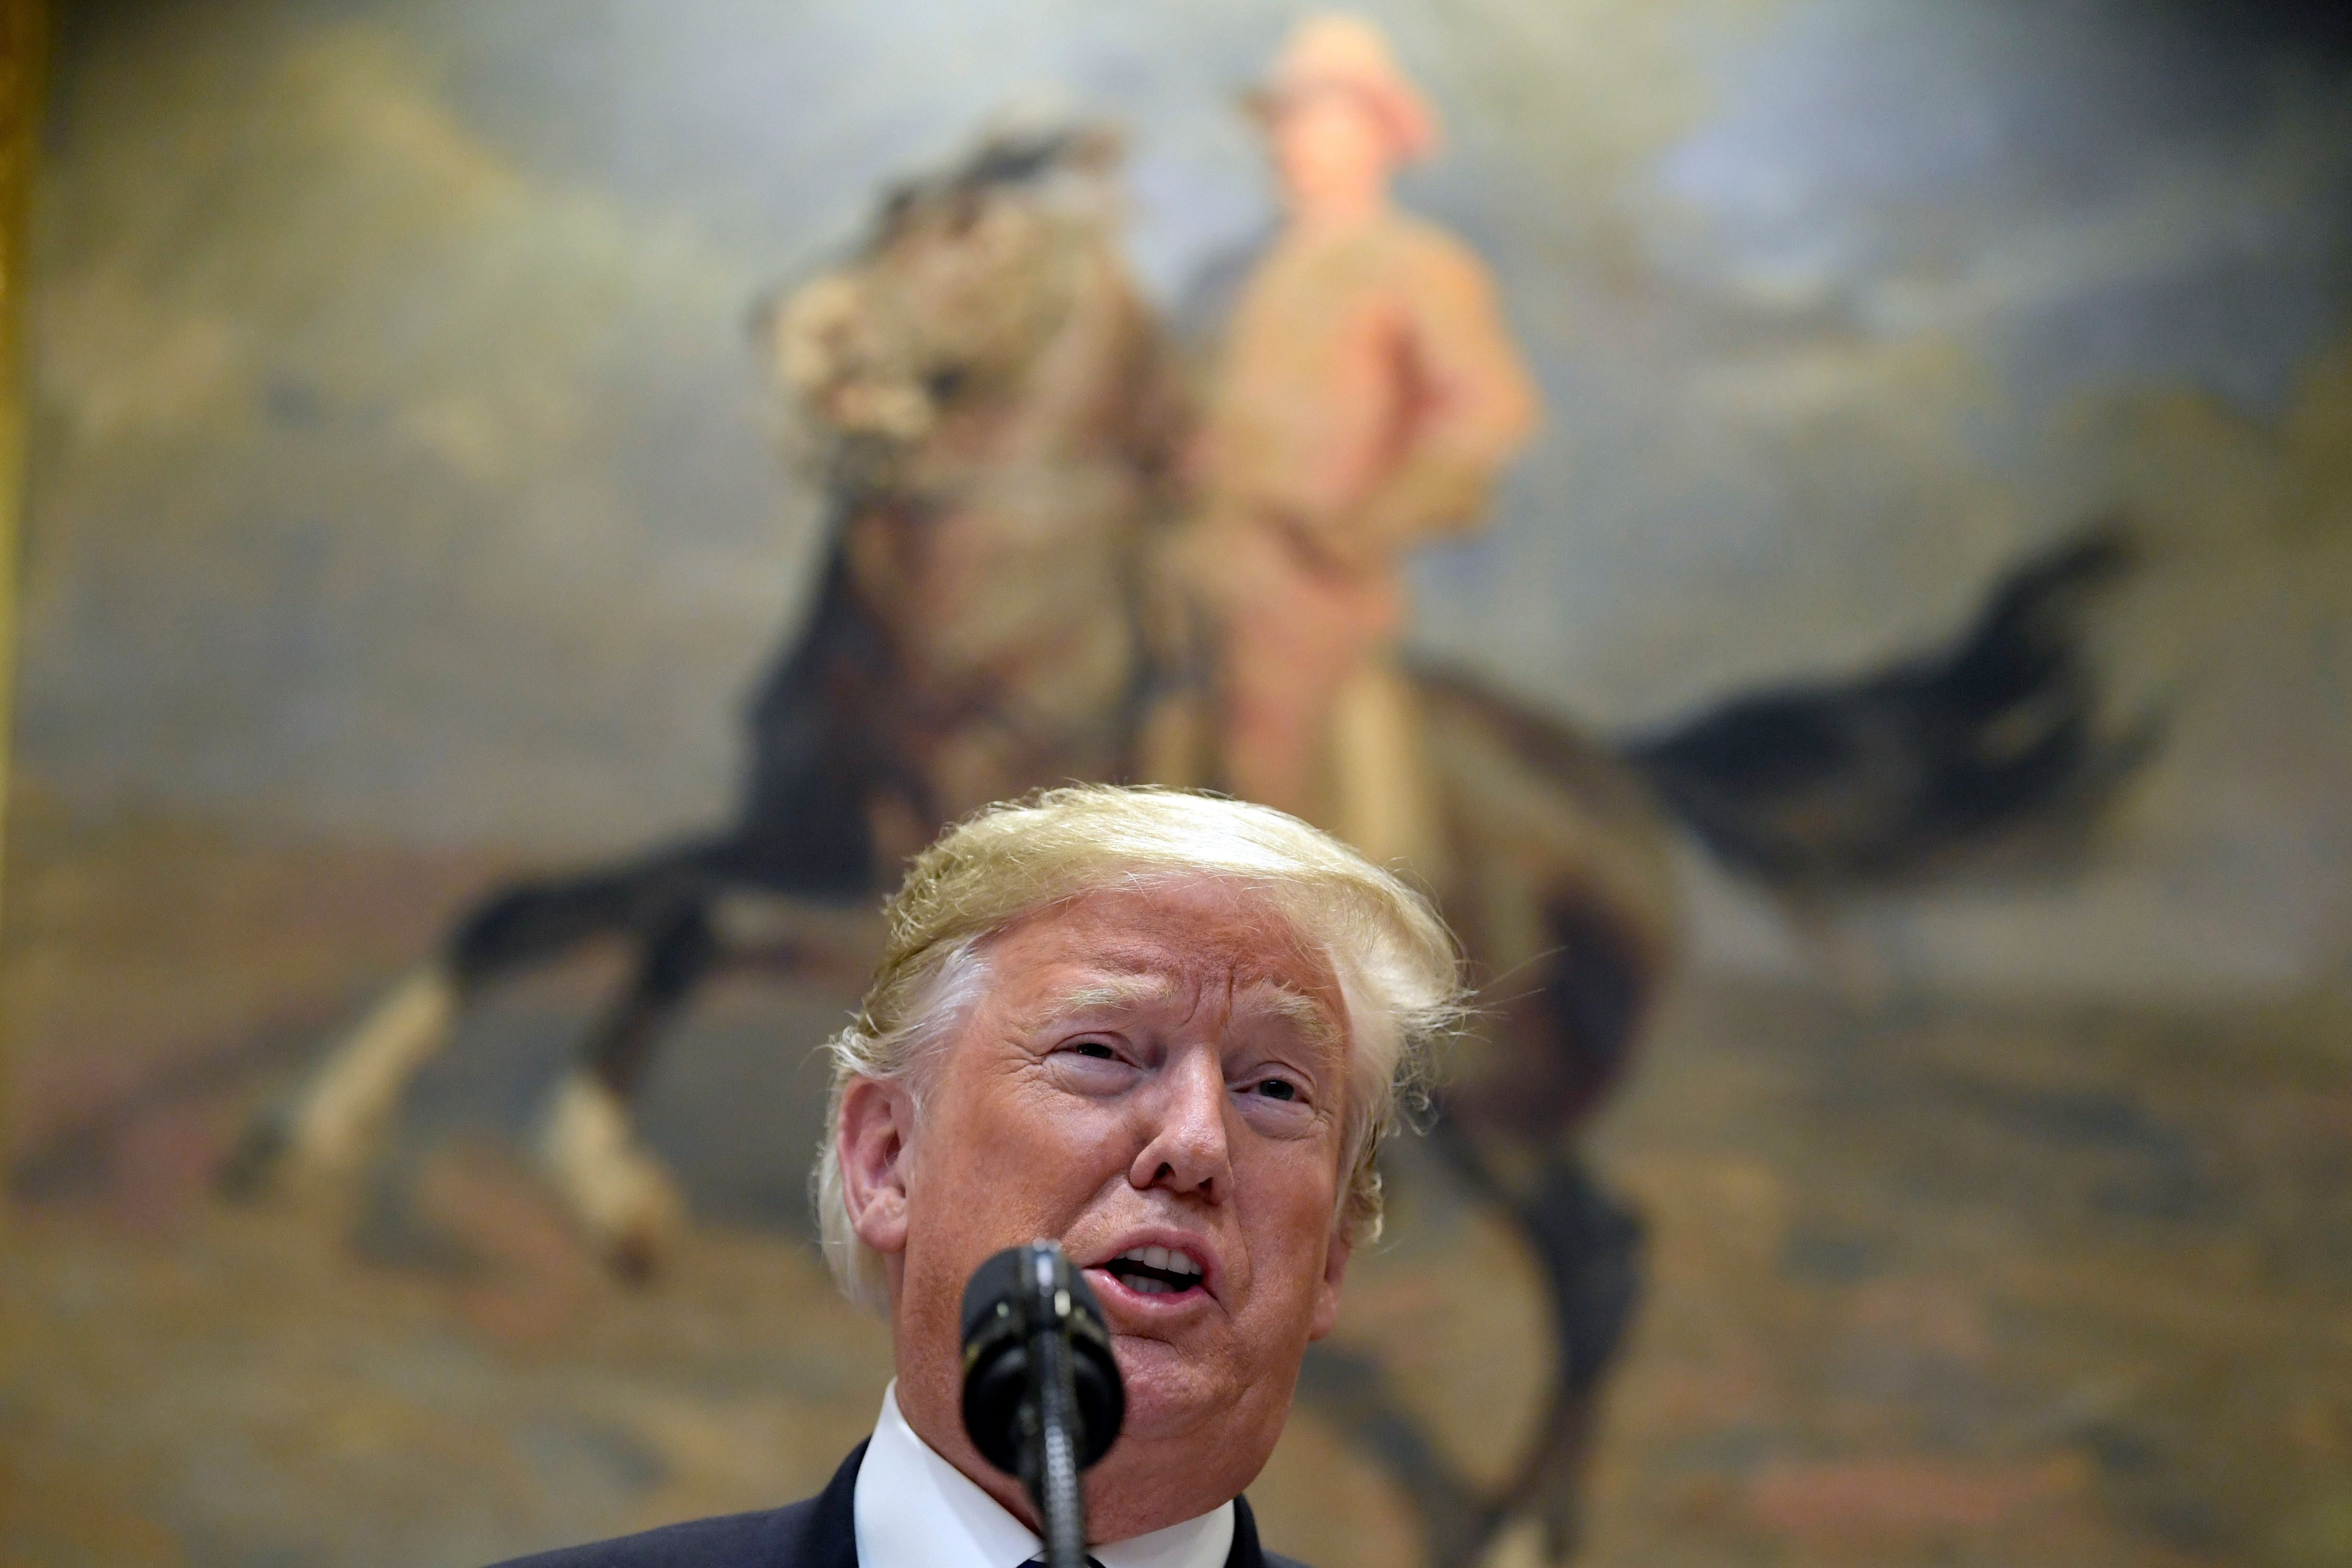 President Donald Trump talks about immigration and gives an update on border security from the Roosevelt Room of the White House in Washington, Thursday, Nov. 1, 2018. Trump says asylum seekers must go to ports of entry in order to make a claim. He says he will issue an executive order next week on immigration. (AP Photo/Susan Walsh)